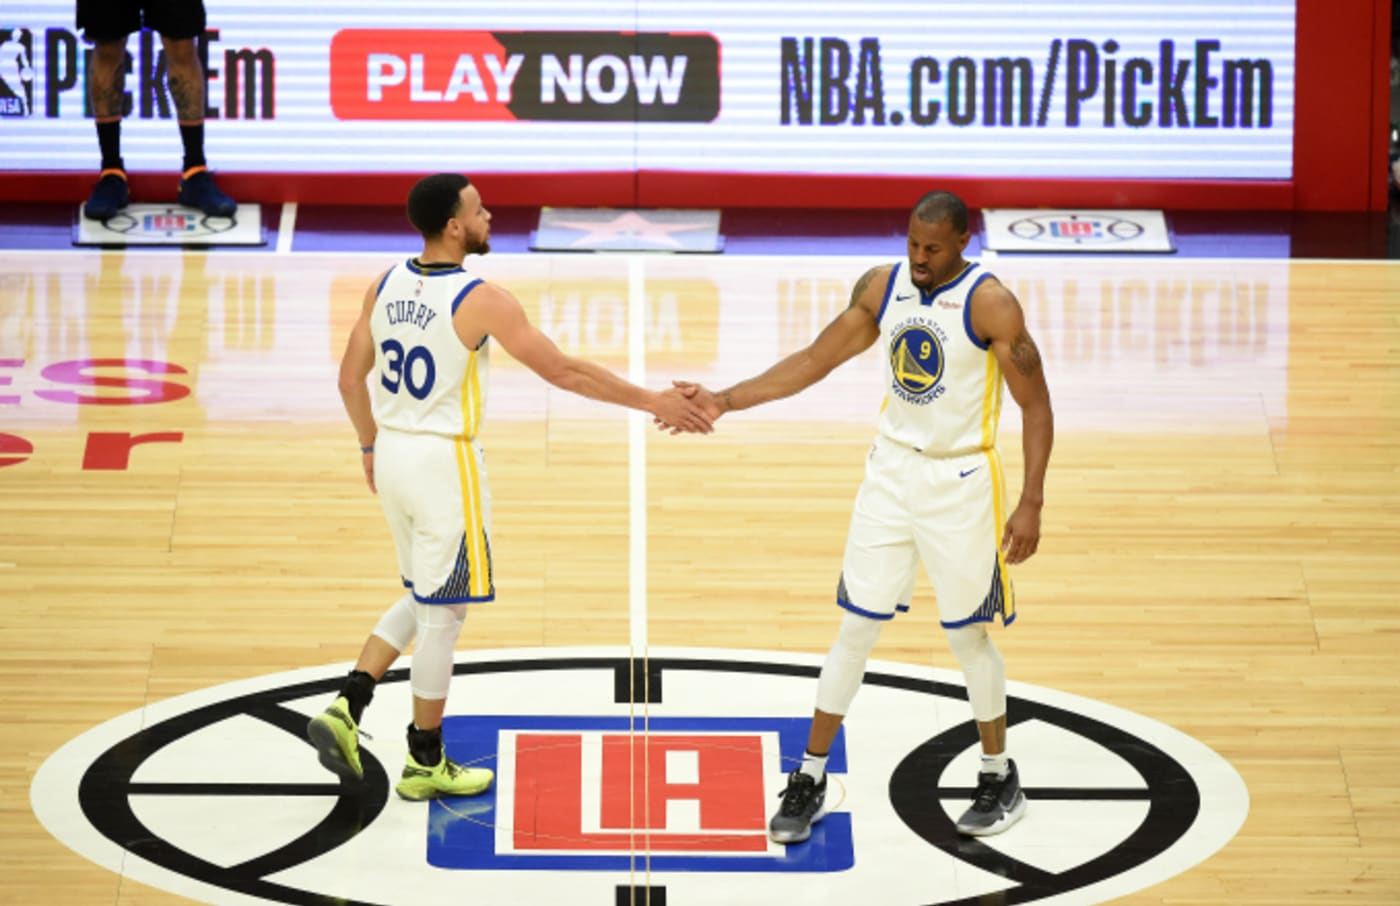 Stephen Curry #30 and Andre Iguodala #9